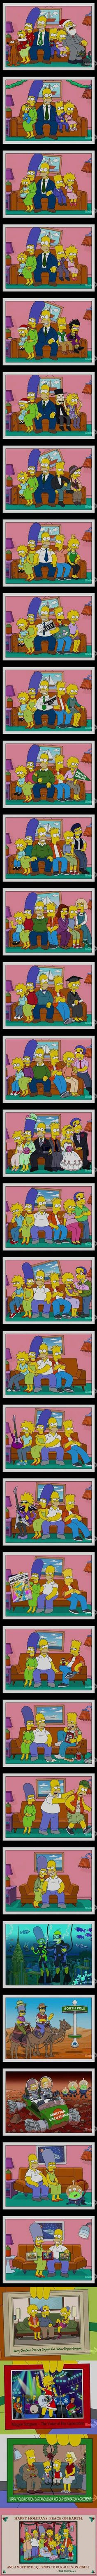 What The Simpsons Would Look Like If They Actually Grew Up